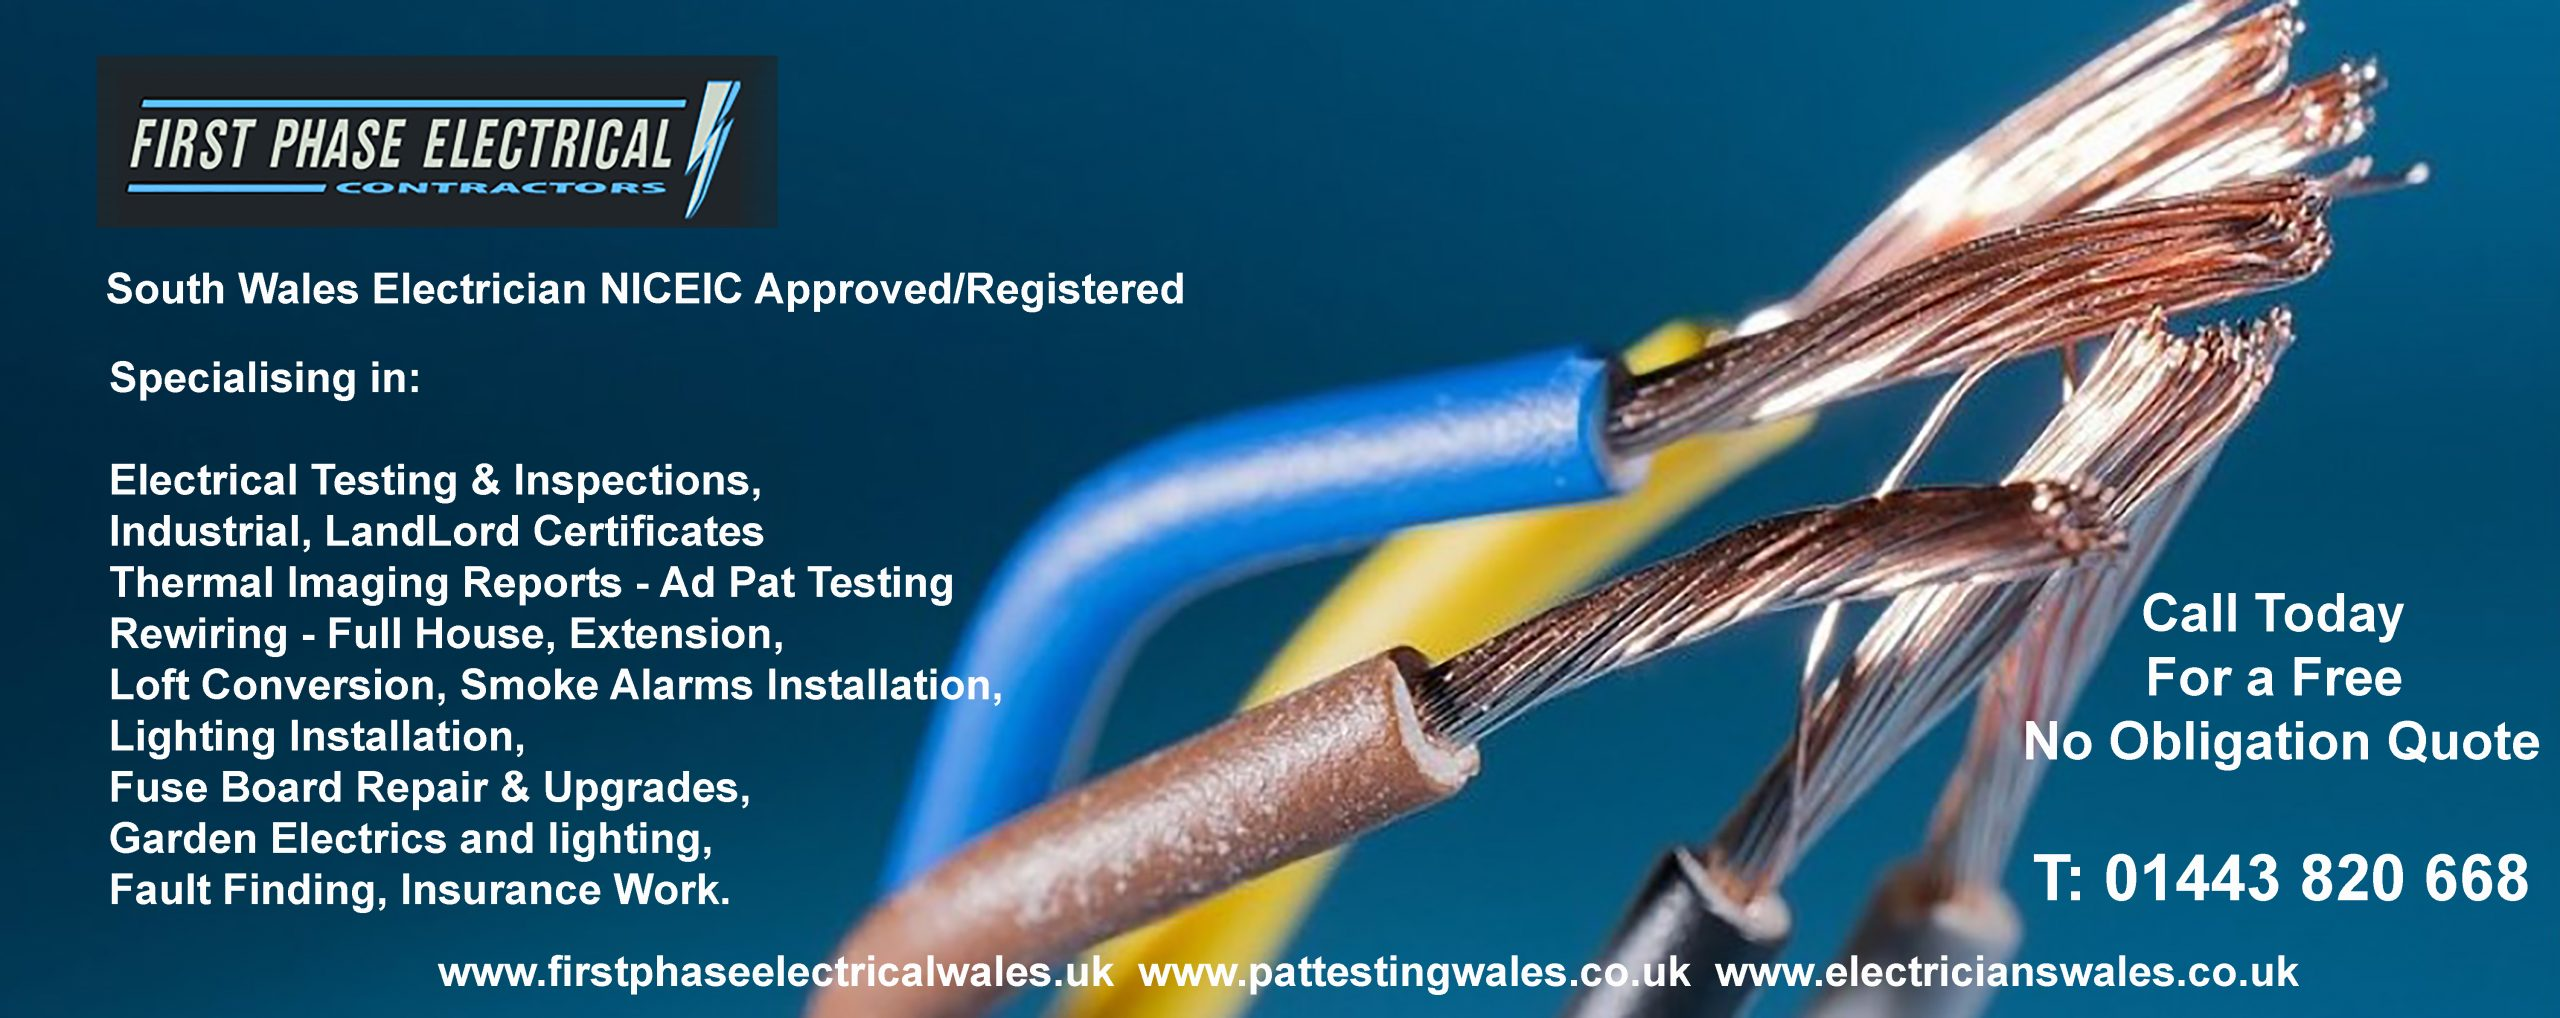 ELECTRICIANS WALES BANNER